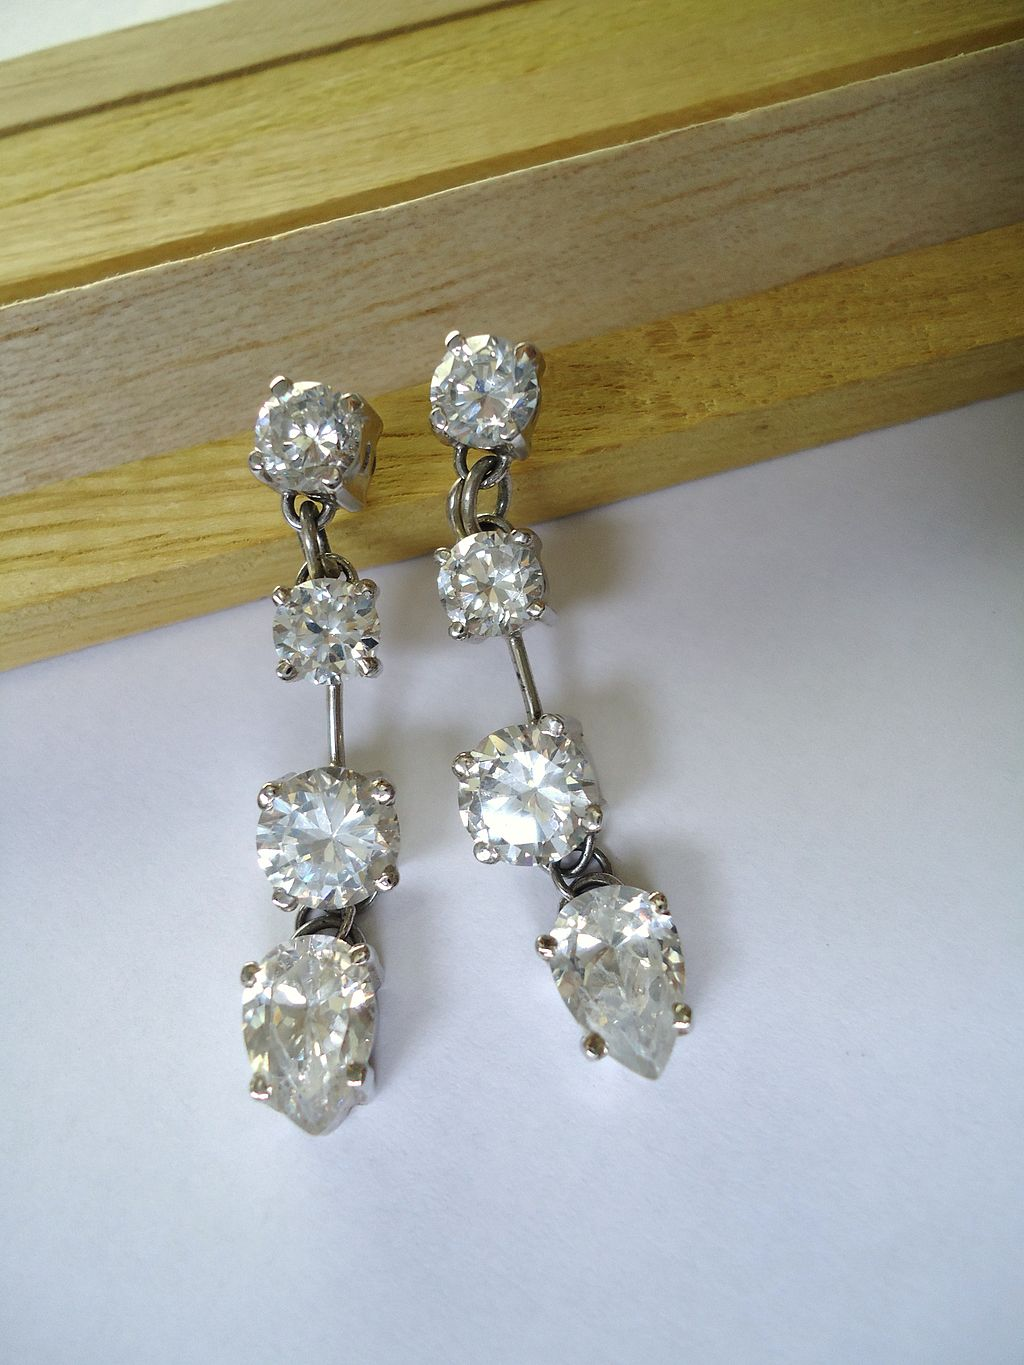 1024px-White_gold_and_diamonds_earrings